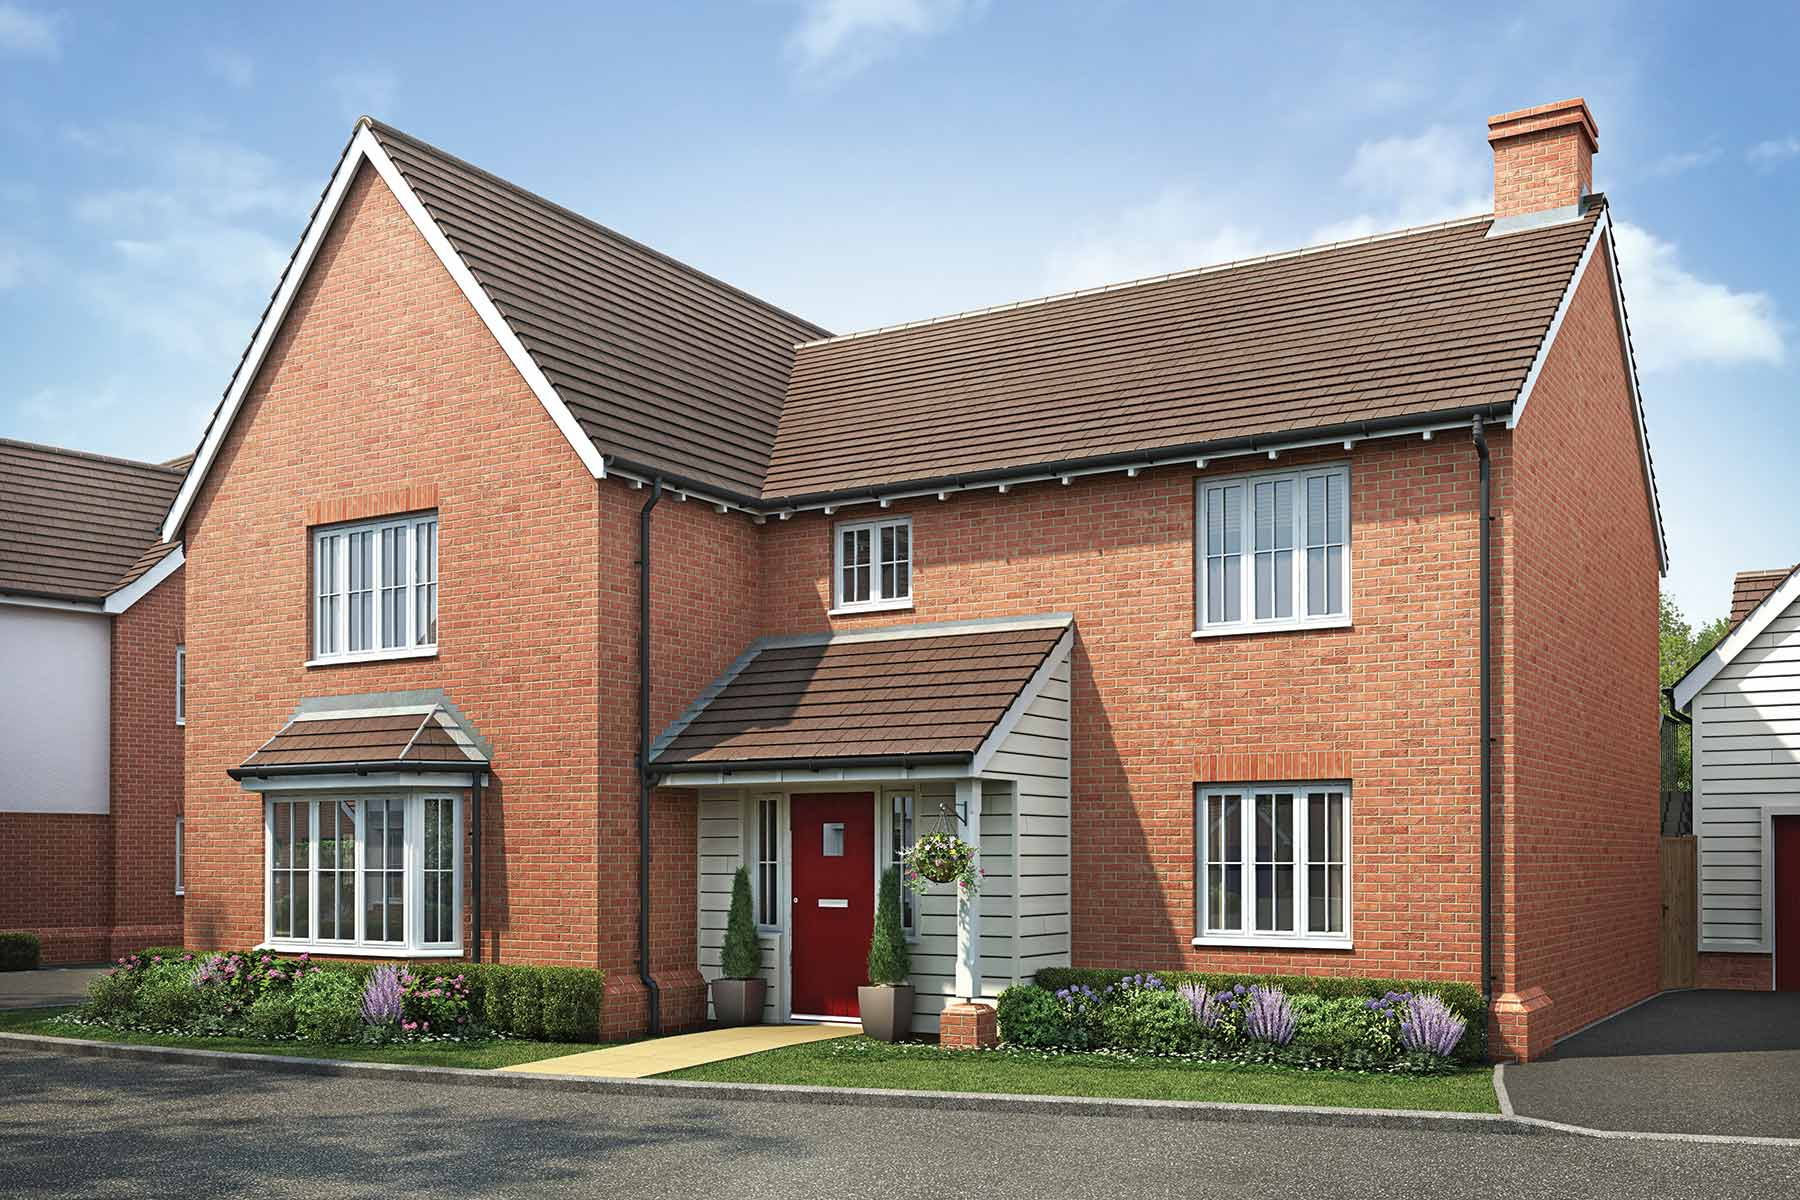 The Gladwin, Taylor Wimpey at Olstead Grange, Felsted, Essex